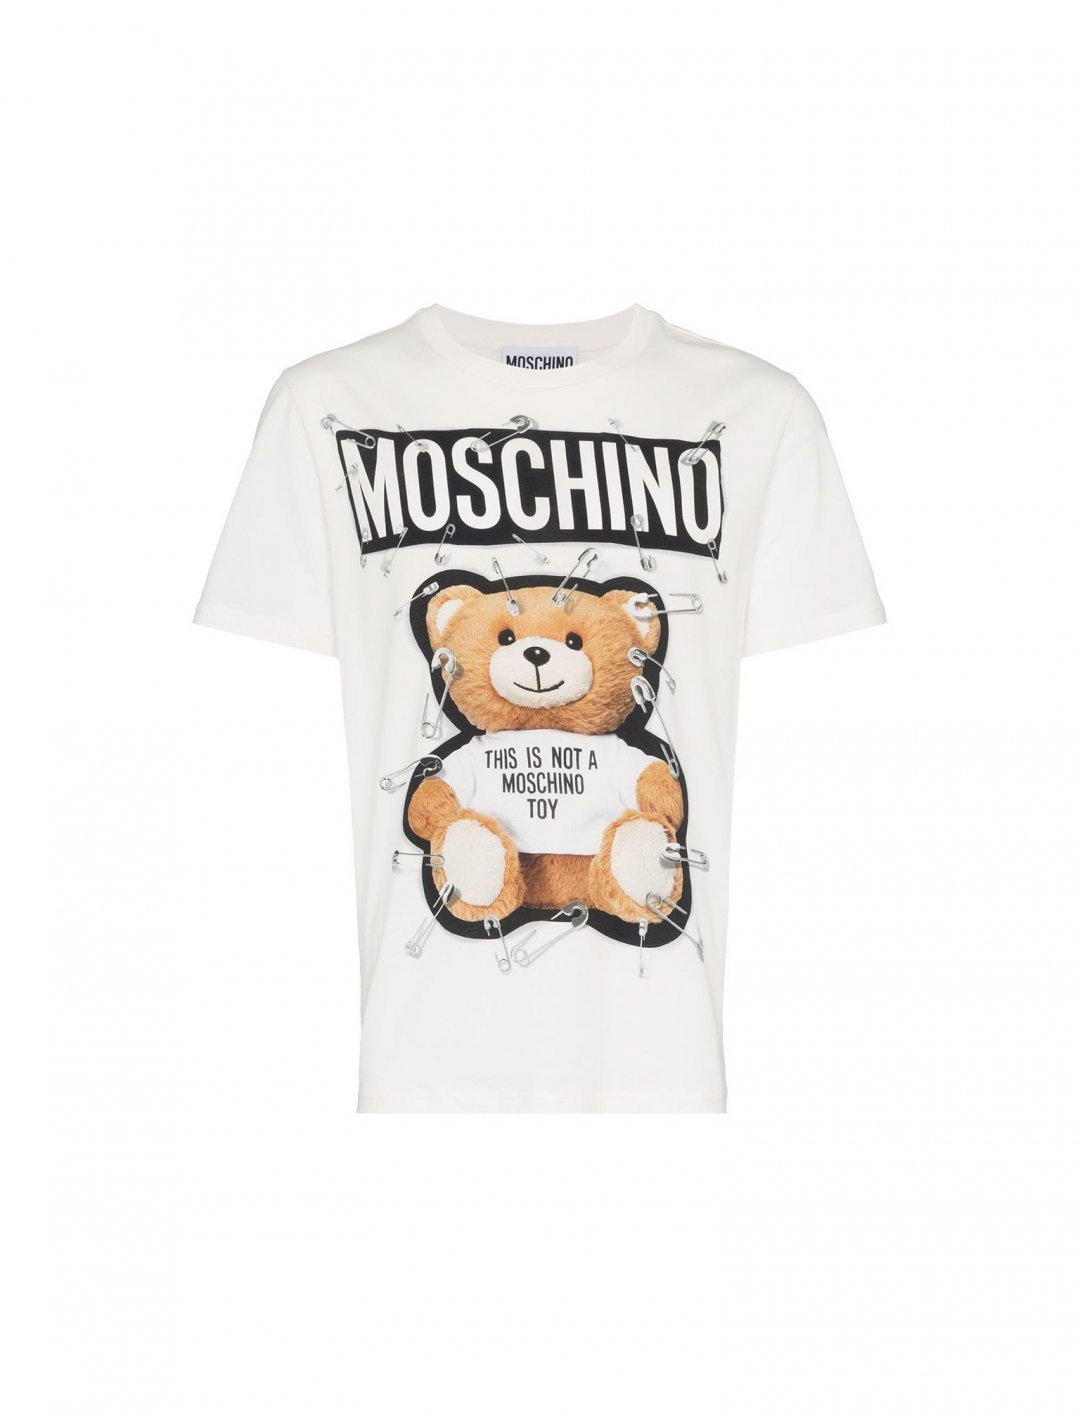 "Lotto Boyzz' Teddy Bear T-Shirt {""id"":5,""product_section_id"":1,""name"":""Clothing"",""order"":5} Moschino"